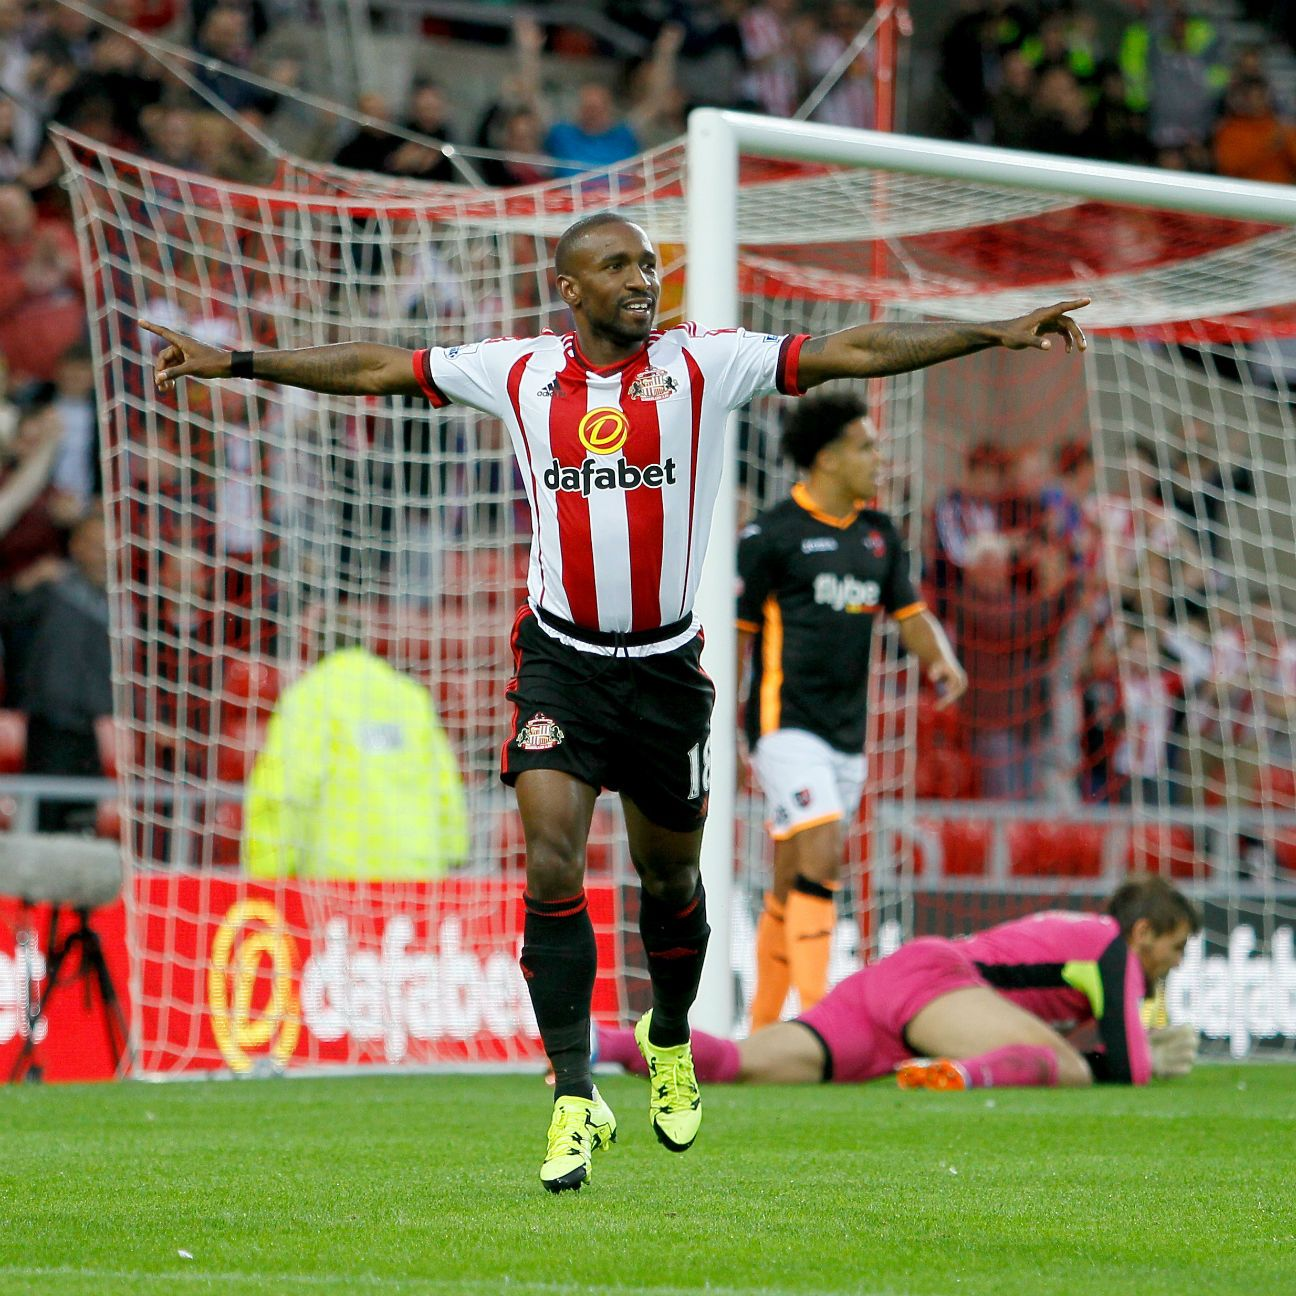 With a trip to Old Trafford looming, Jermaine Defoe and Sunderland must look to take all three points at Bournemouth this weekend.